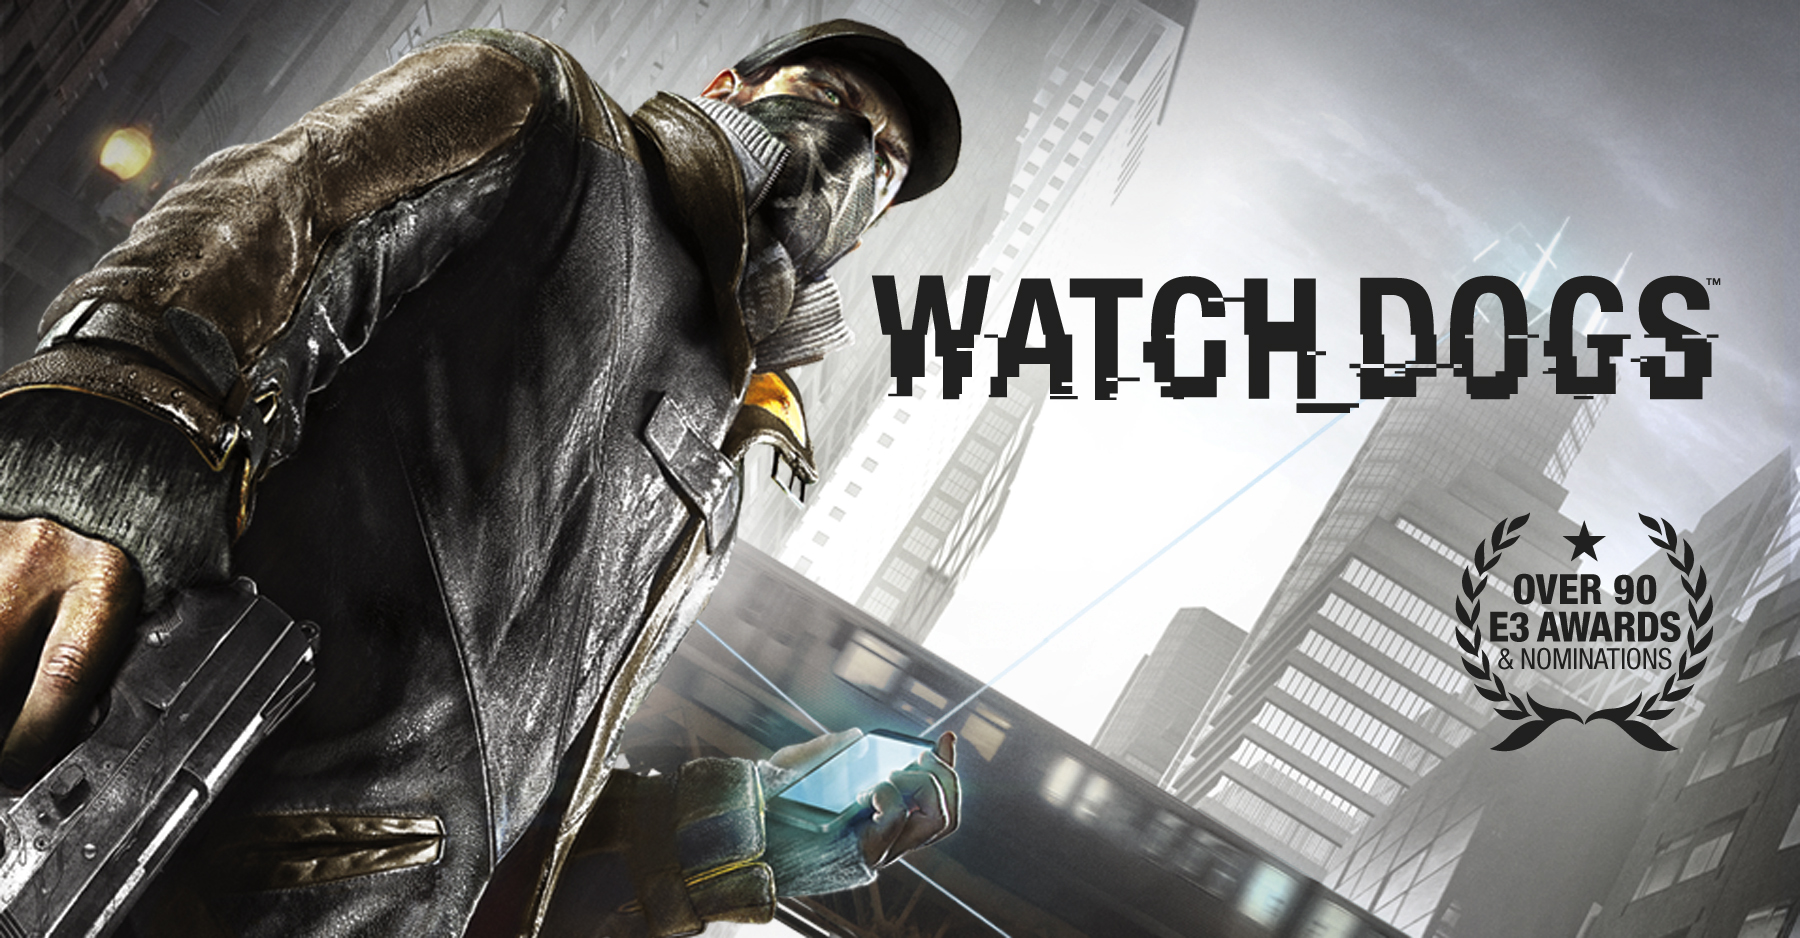 Watchdogs for Xbox One